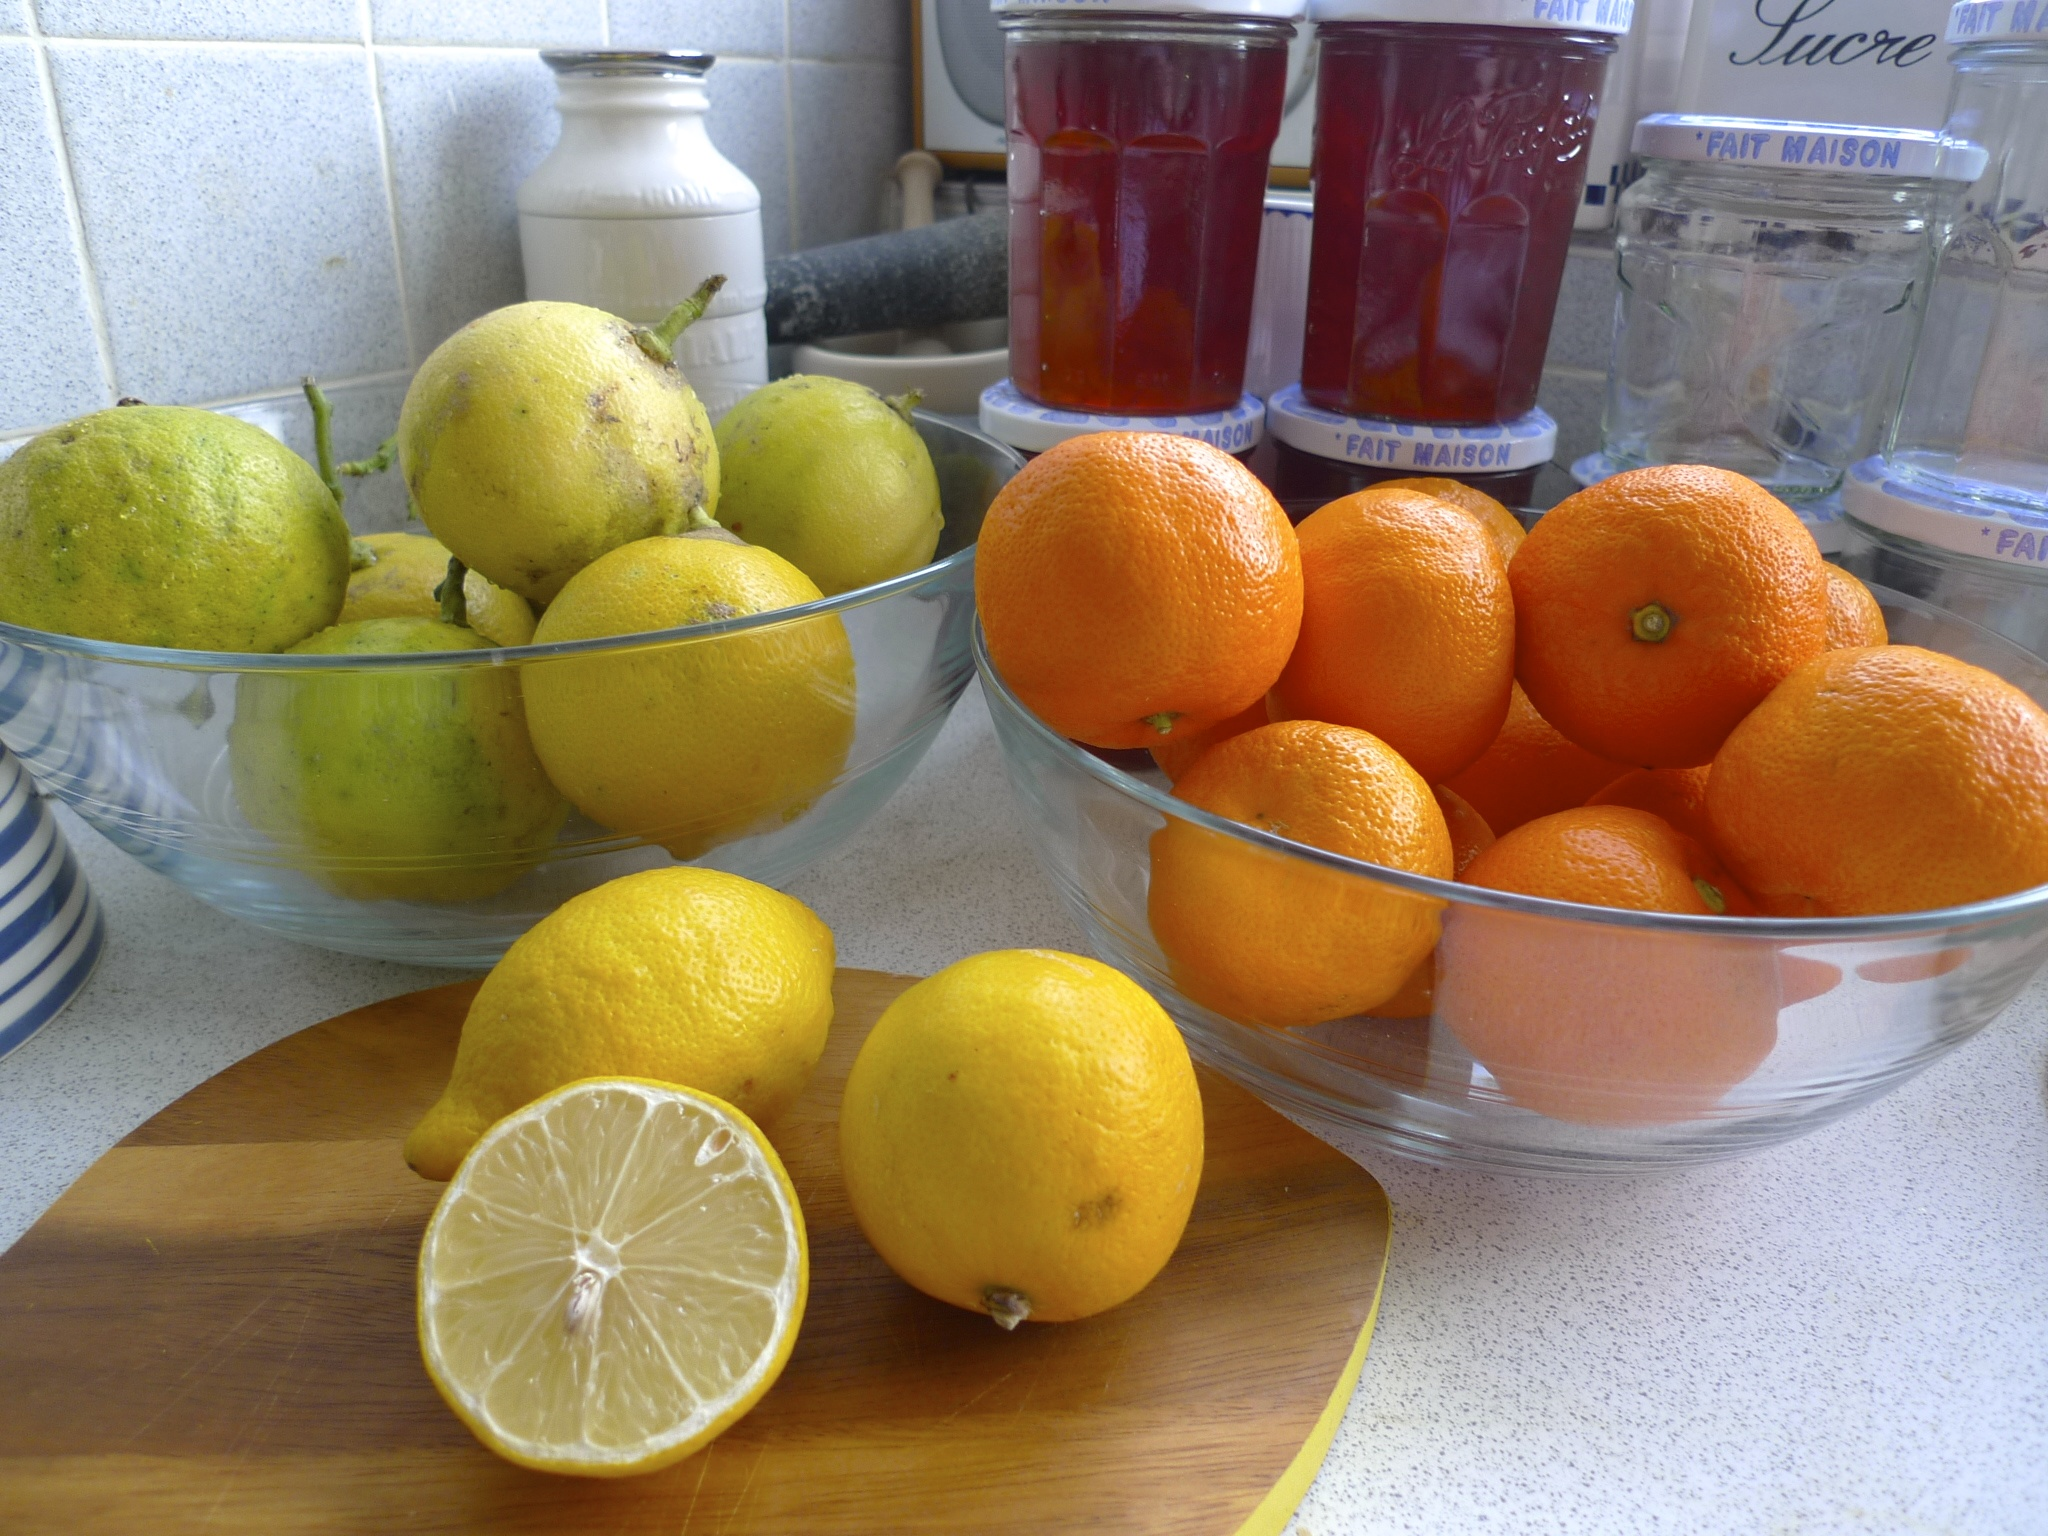 Fruit for making marmalade